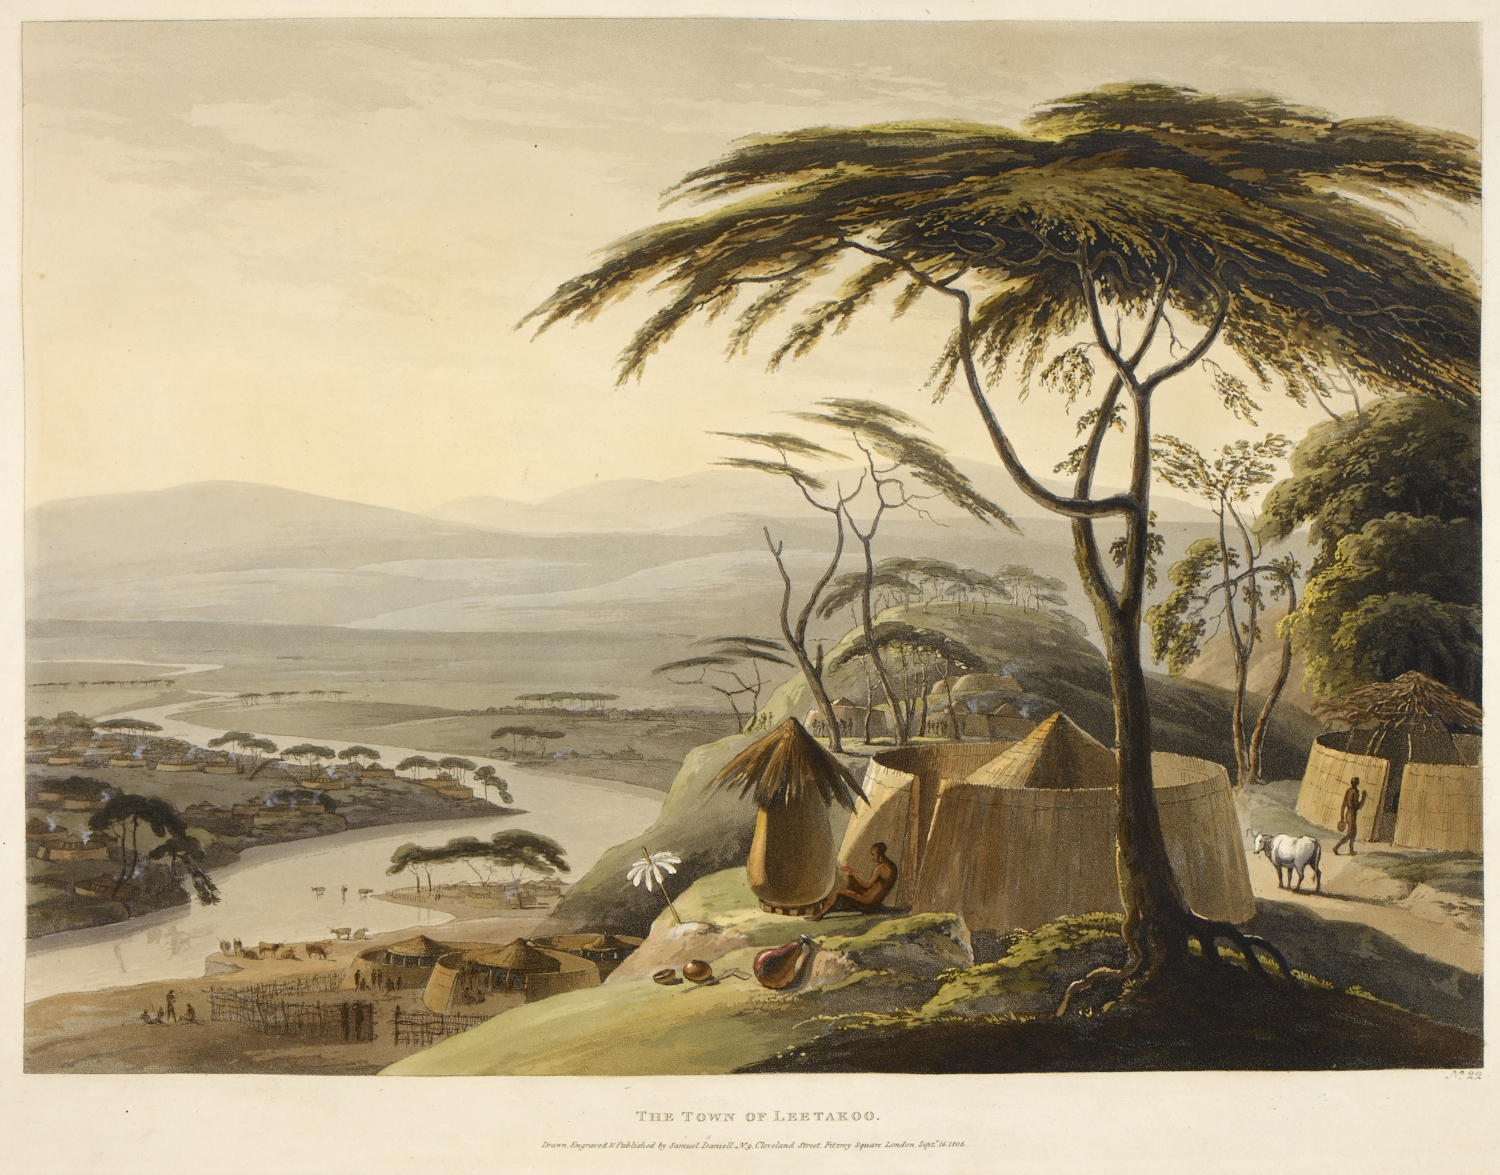 View of Dithakong, the Tlhaping capital in the northern Cape, South Africa, in 1801, by Samuel Daniell